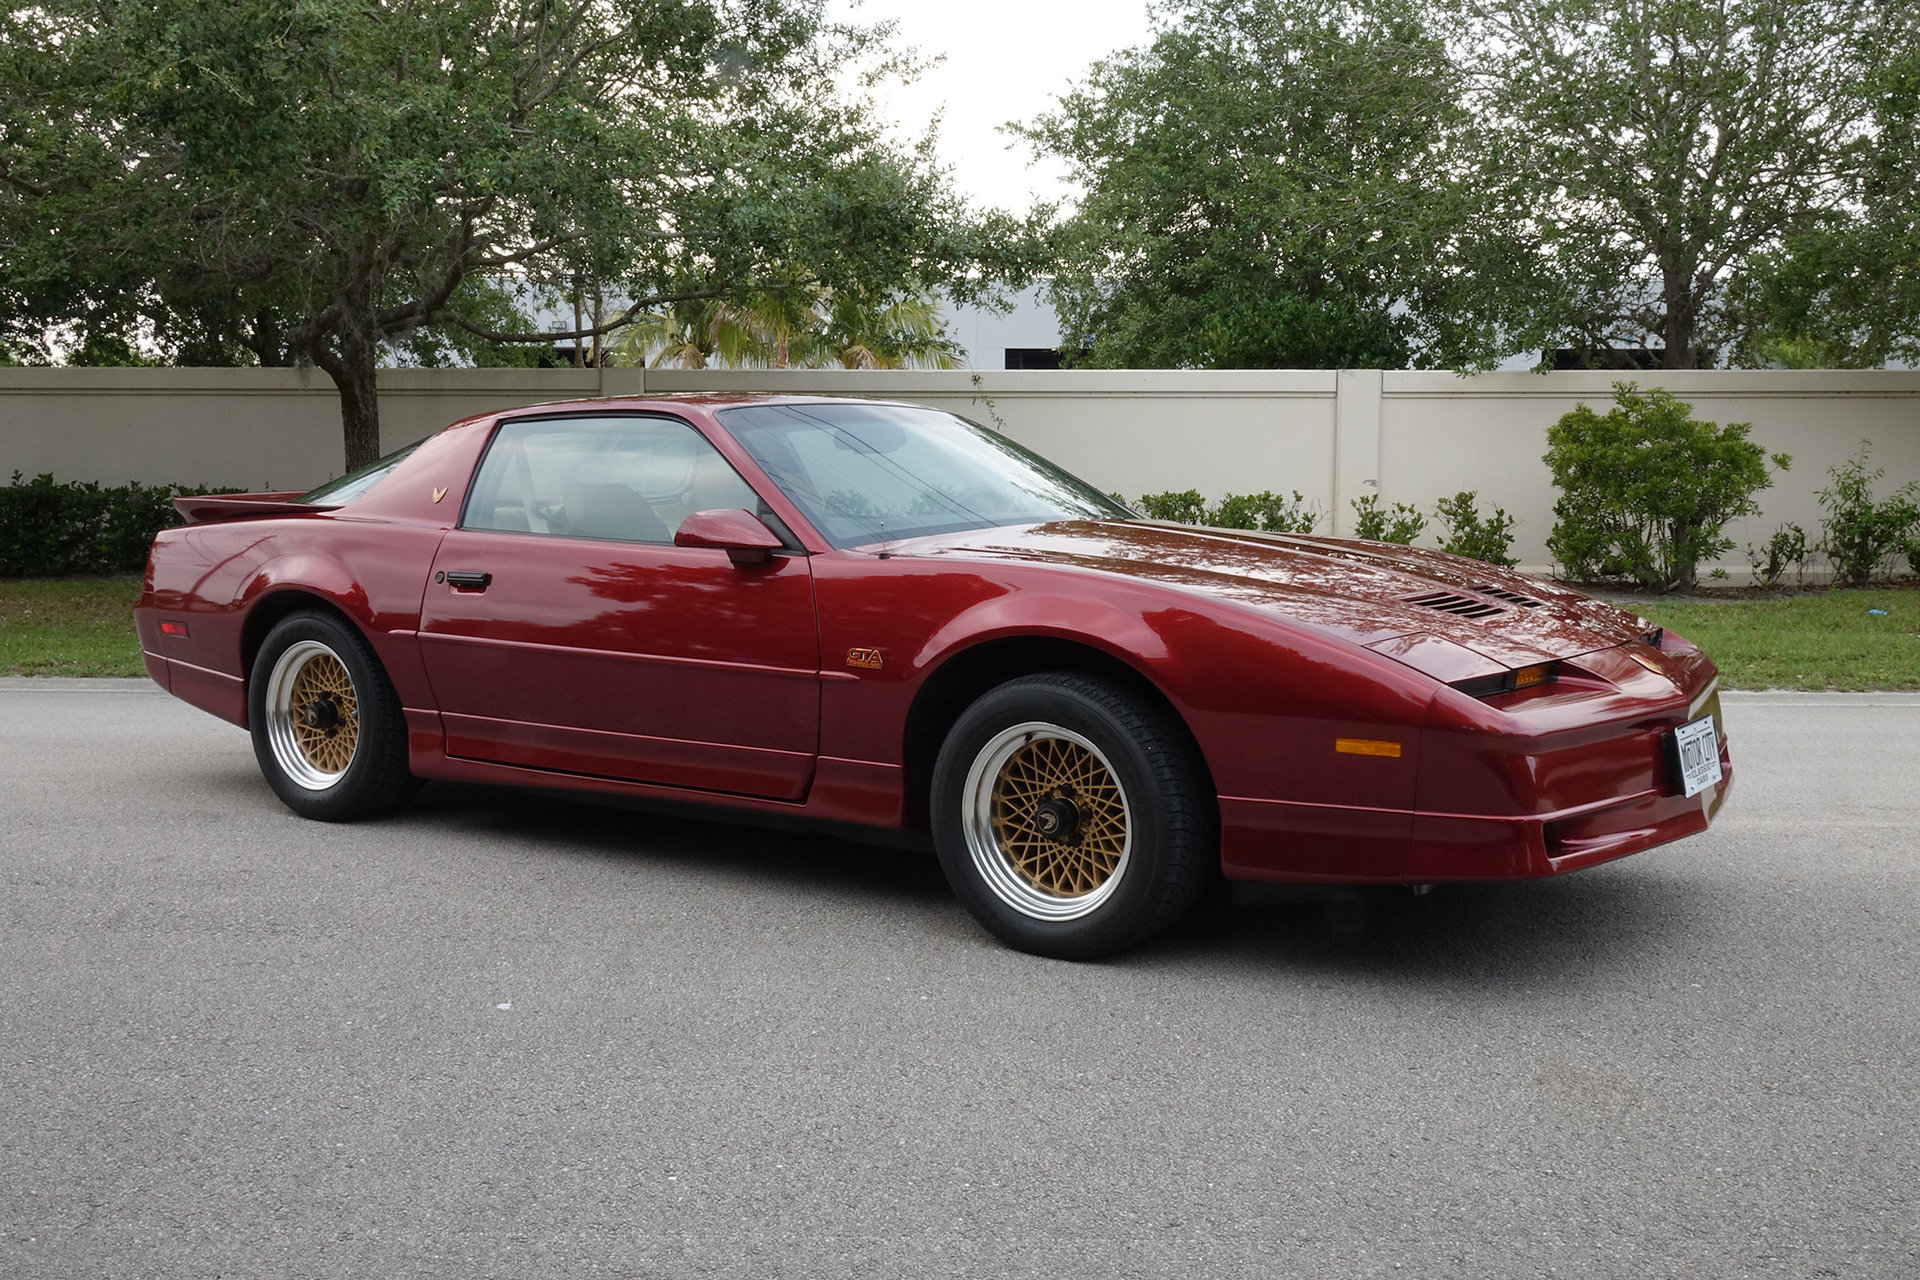 1987 pontiac firebird trans am gta for sale 87065 mcg. Black Bedroom Furniture Sets. Home Design Ideas